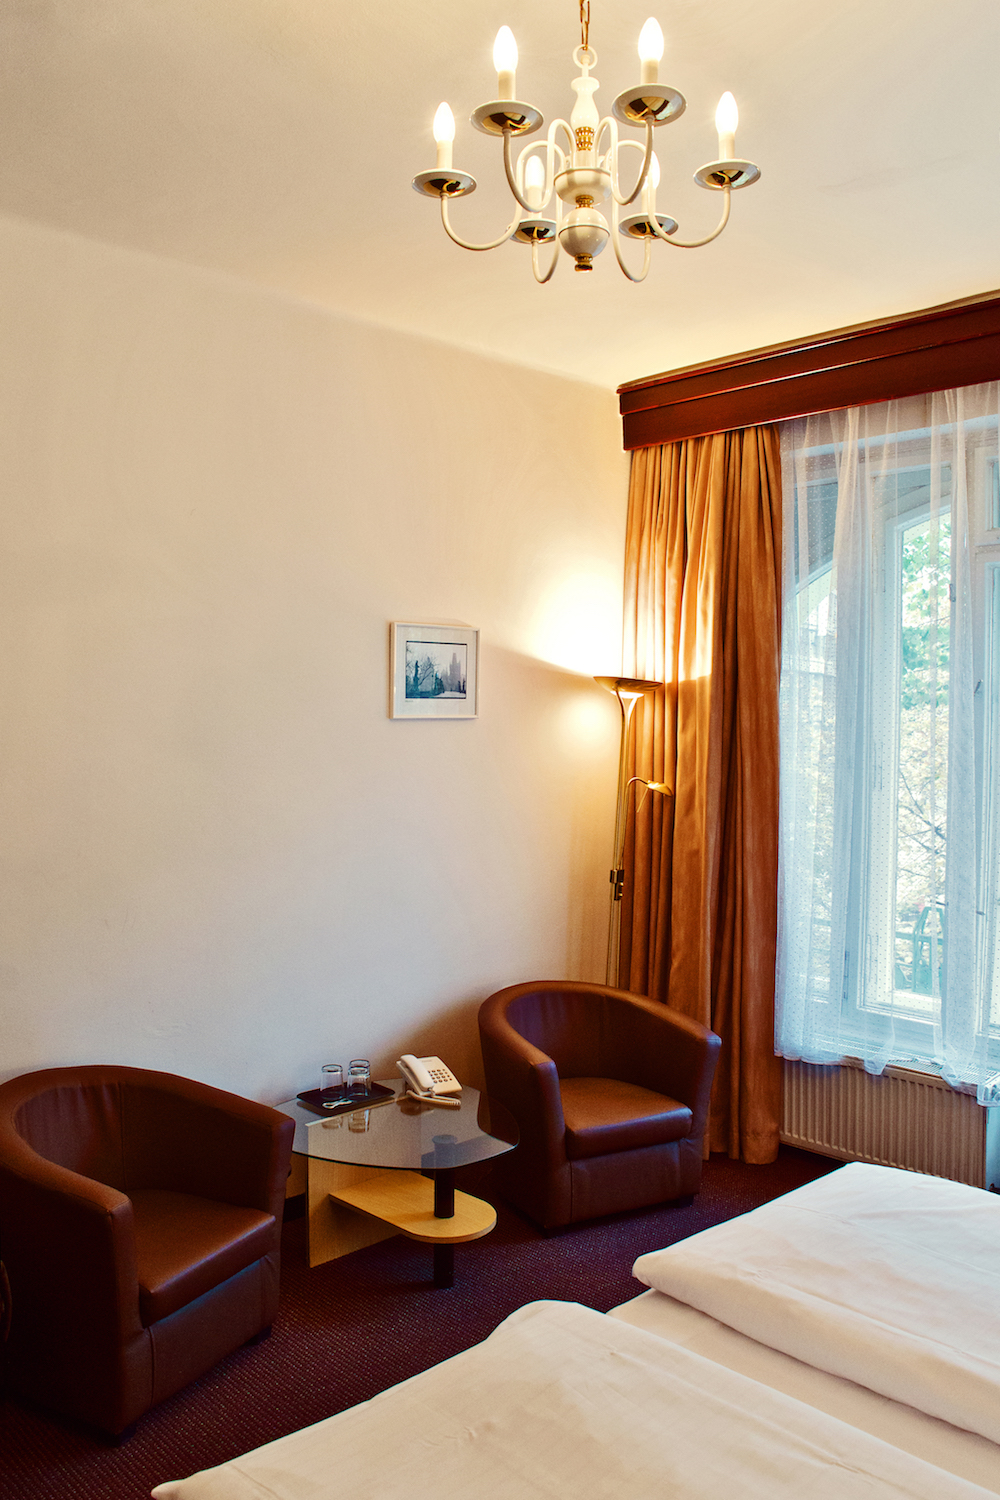 Hotel Meran | Prague 1 | Photos 13